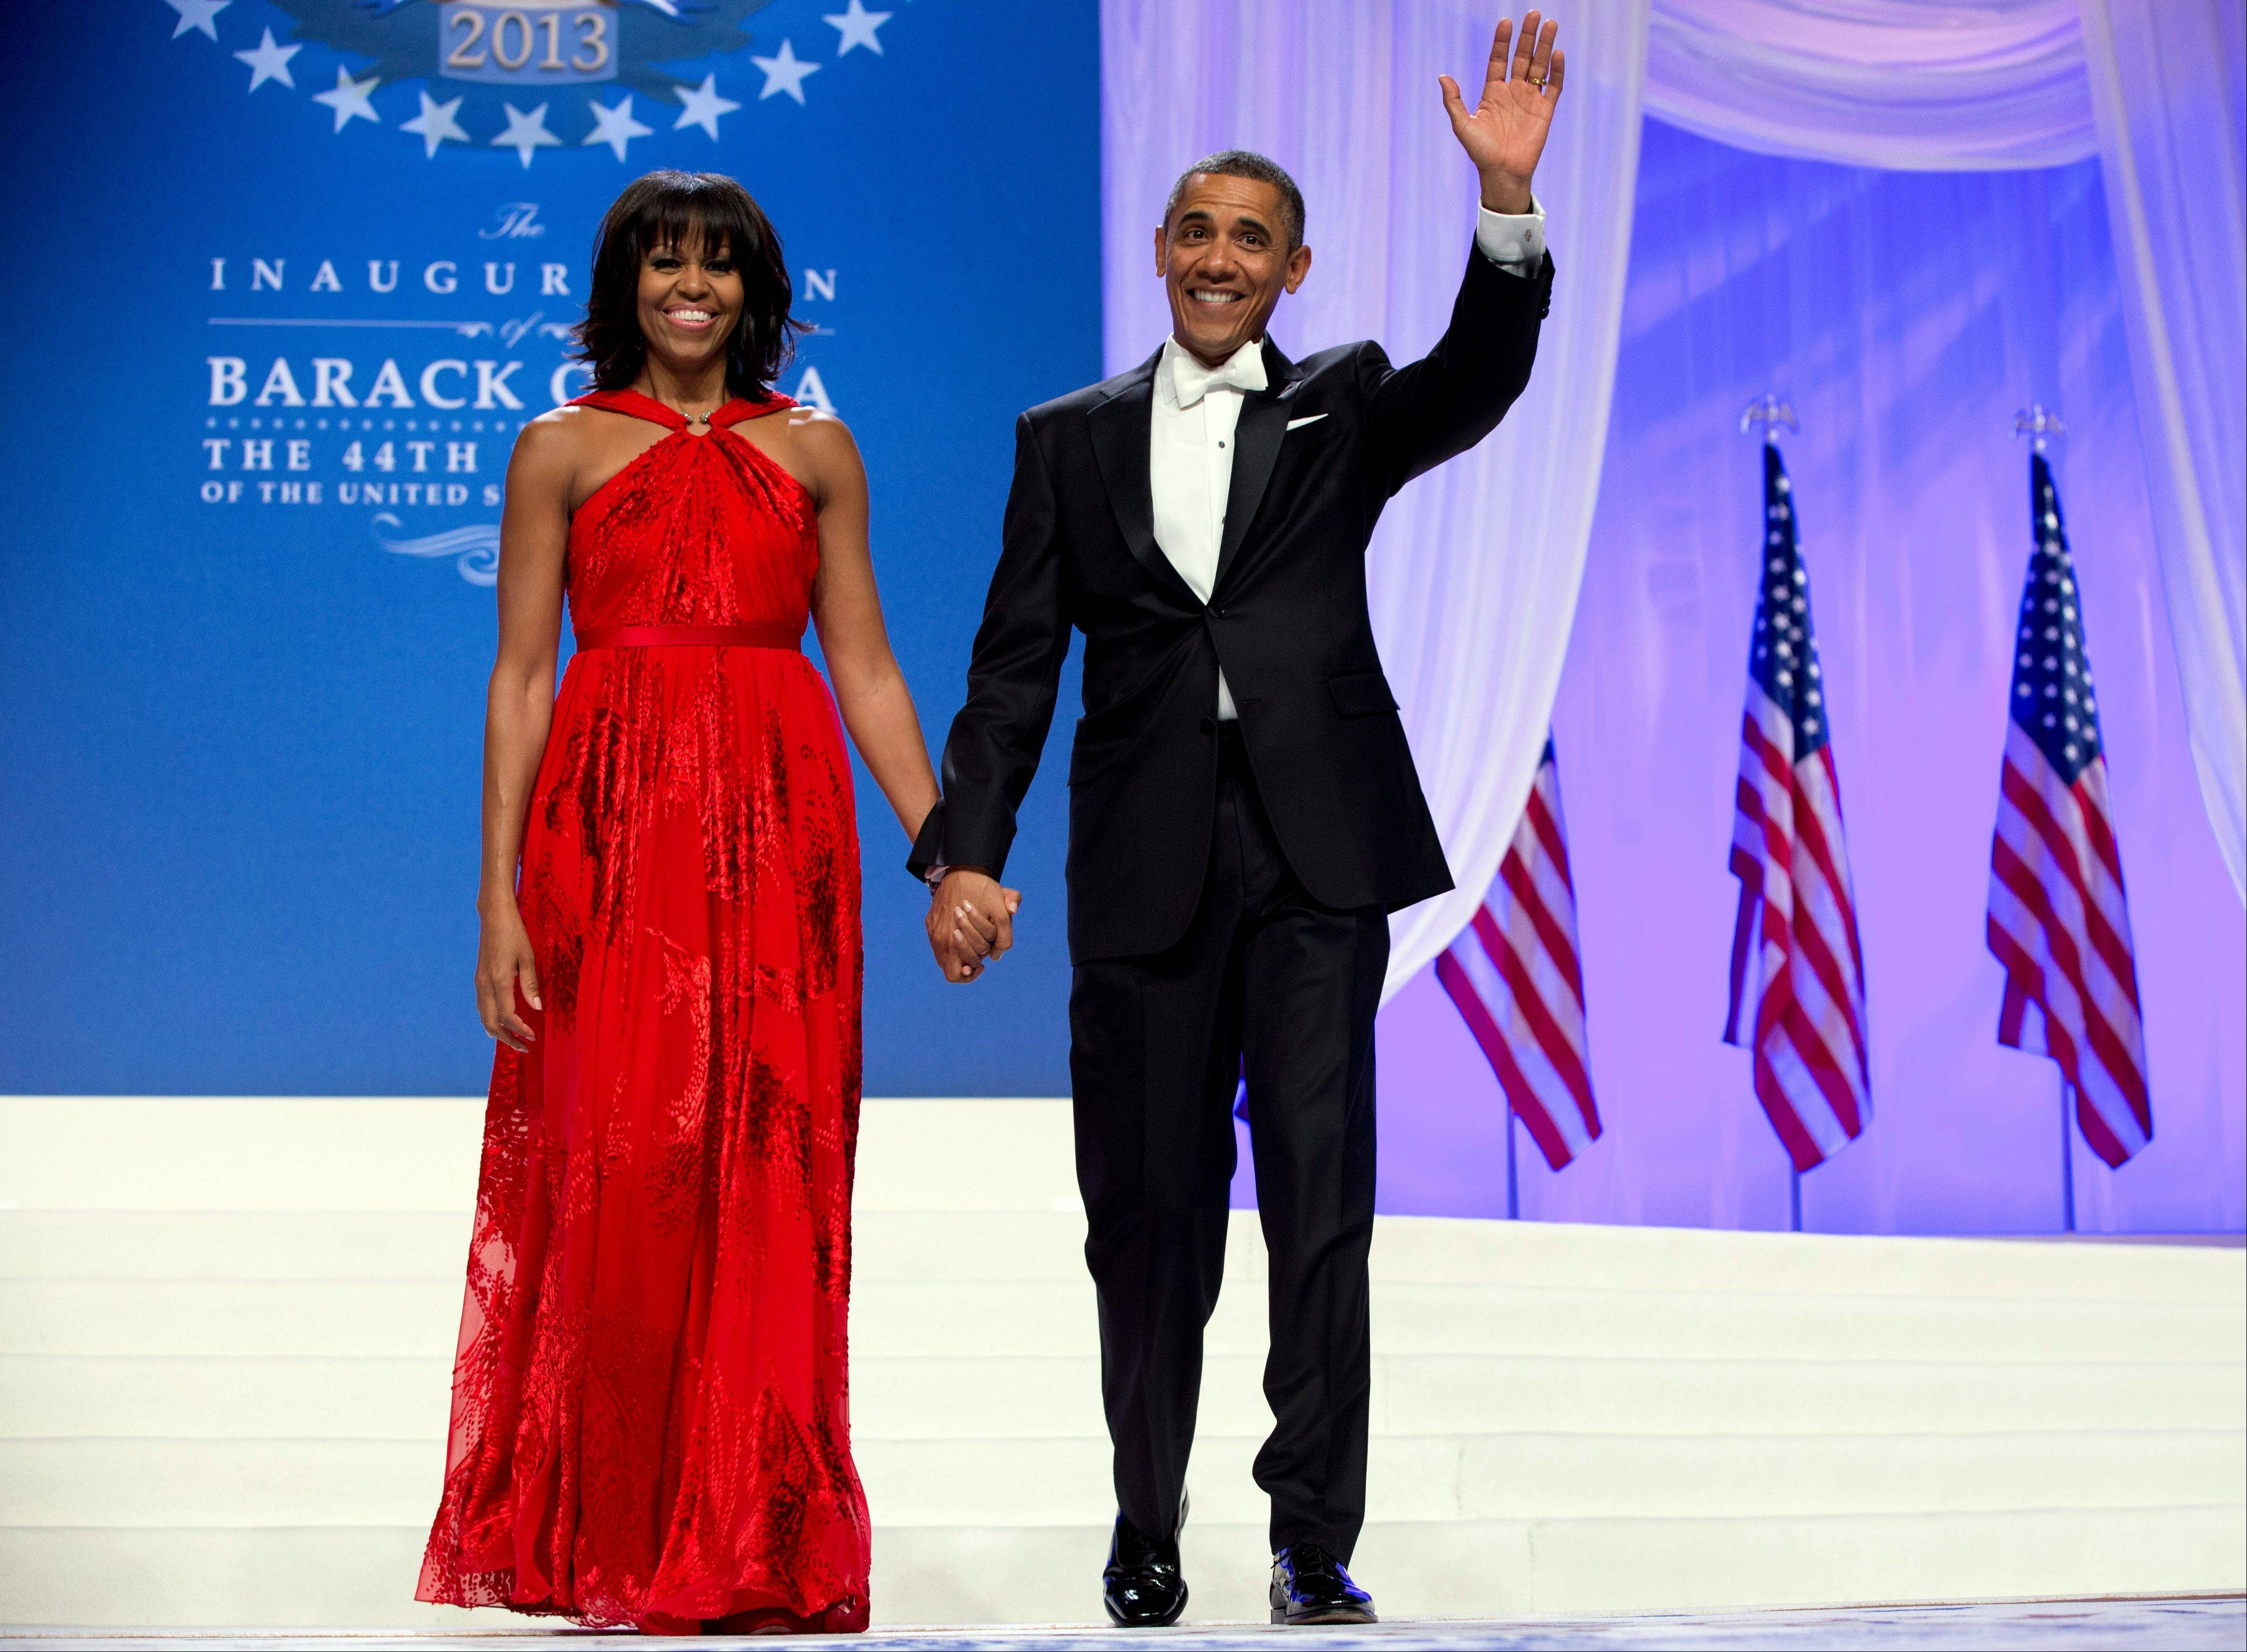 This Jan. 21, 2013 file photo shows President Barack Obama and first lady Michelle Obama at an Inaugural Ball at the Washington Convention Center in Washington, during the 57th Presidential Inauguration. Nobody would call bangs a new trend, but when the first lady's involved, things take on more significance. In fact, President Barack Obama did call his wife Michelle's new hairdo the most significant event of his second inauguration.